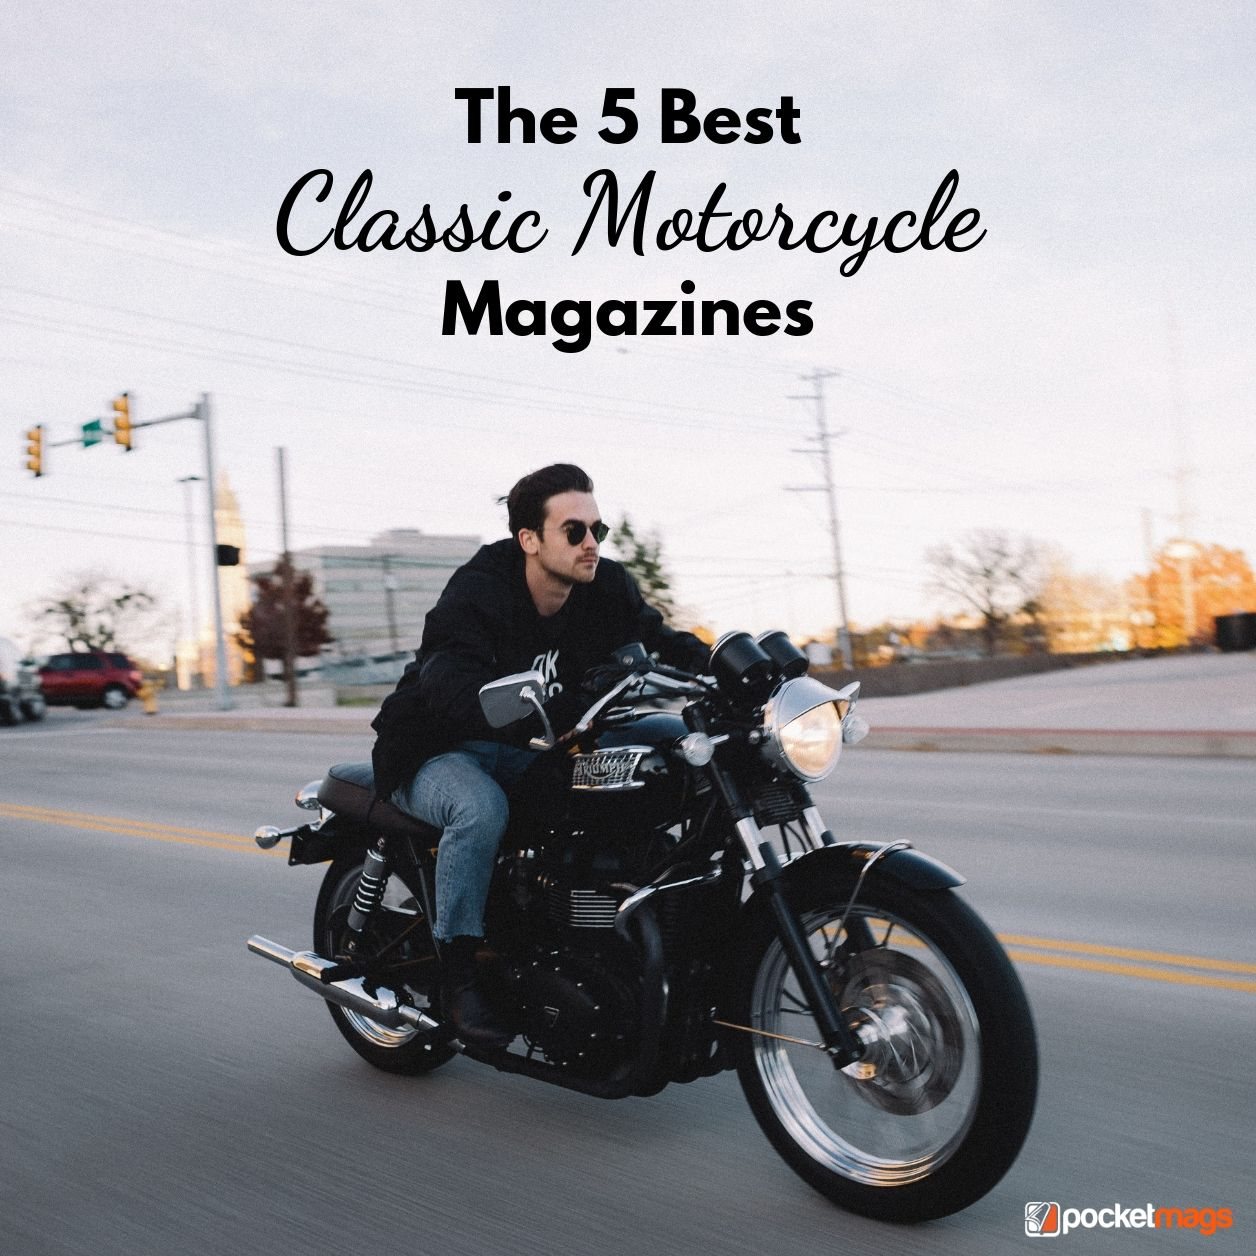 The 5 Best Classic Motorcycle Magazines